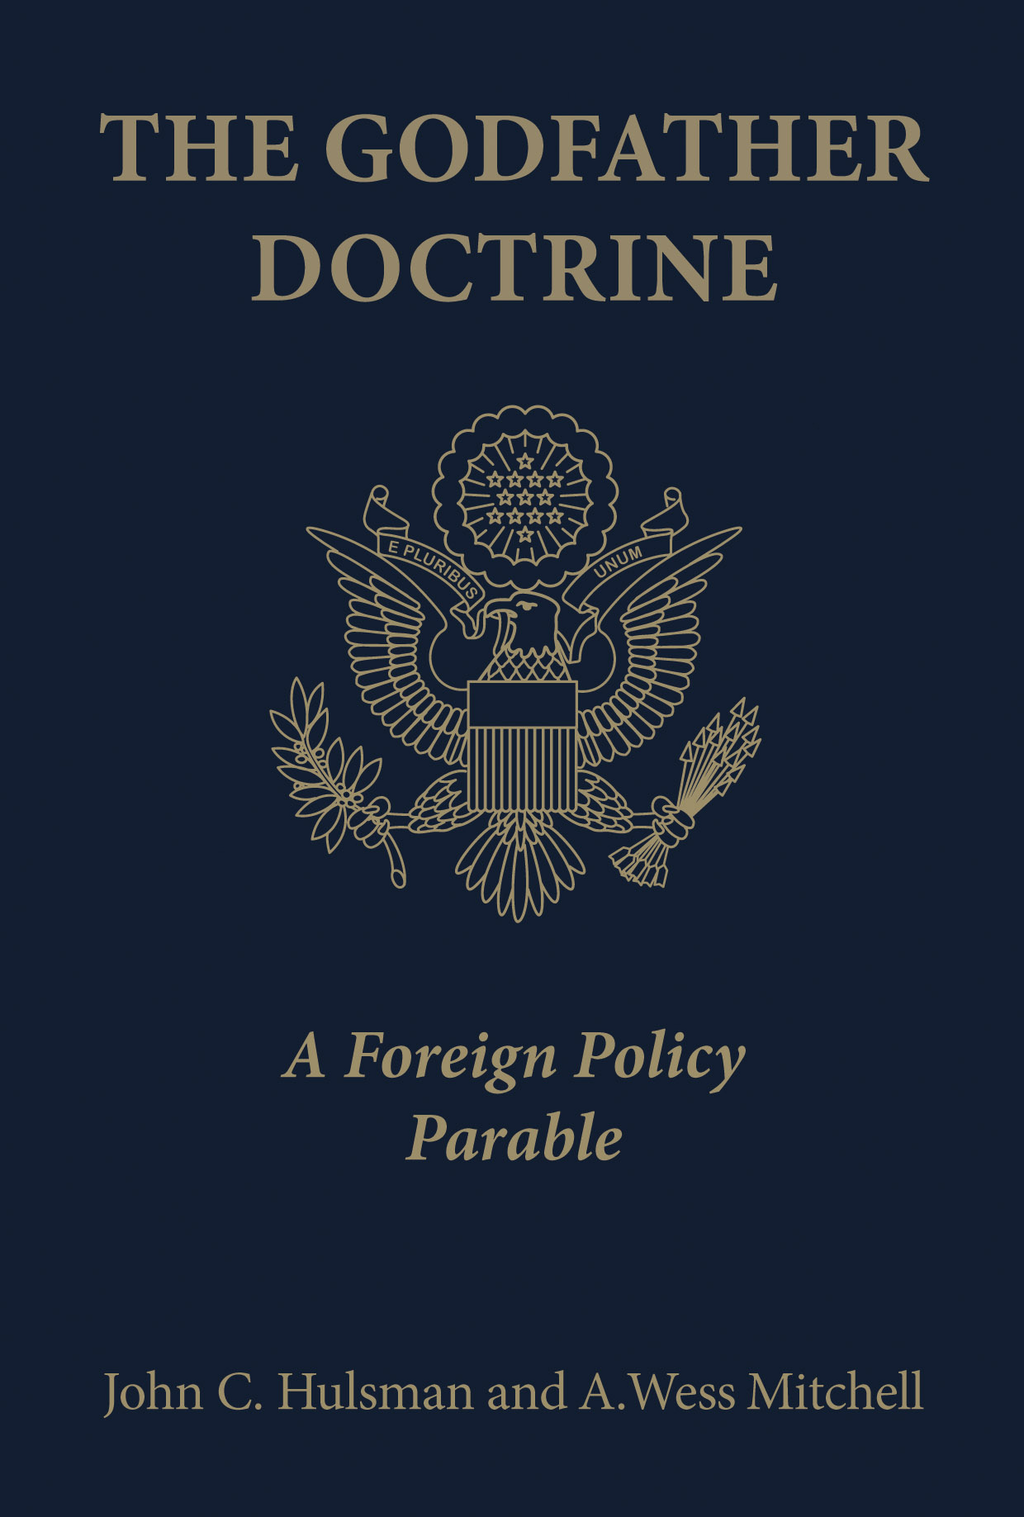 The Godfather Doctrine By: A. Wess Mitchell,John C. Hulsman